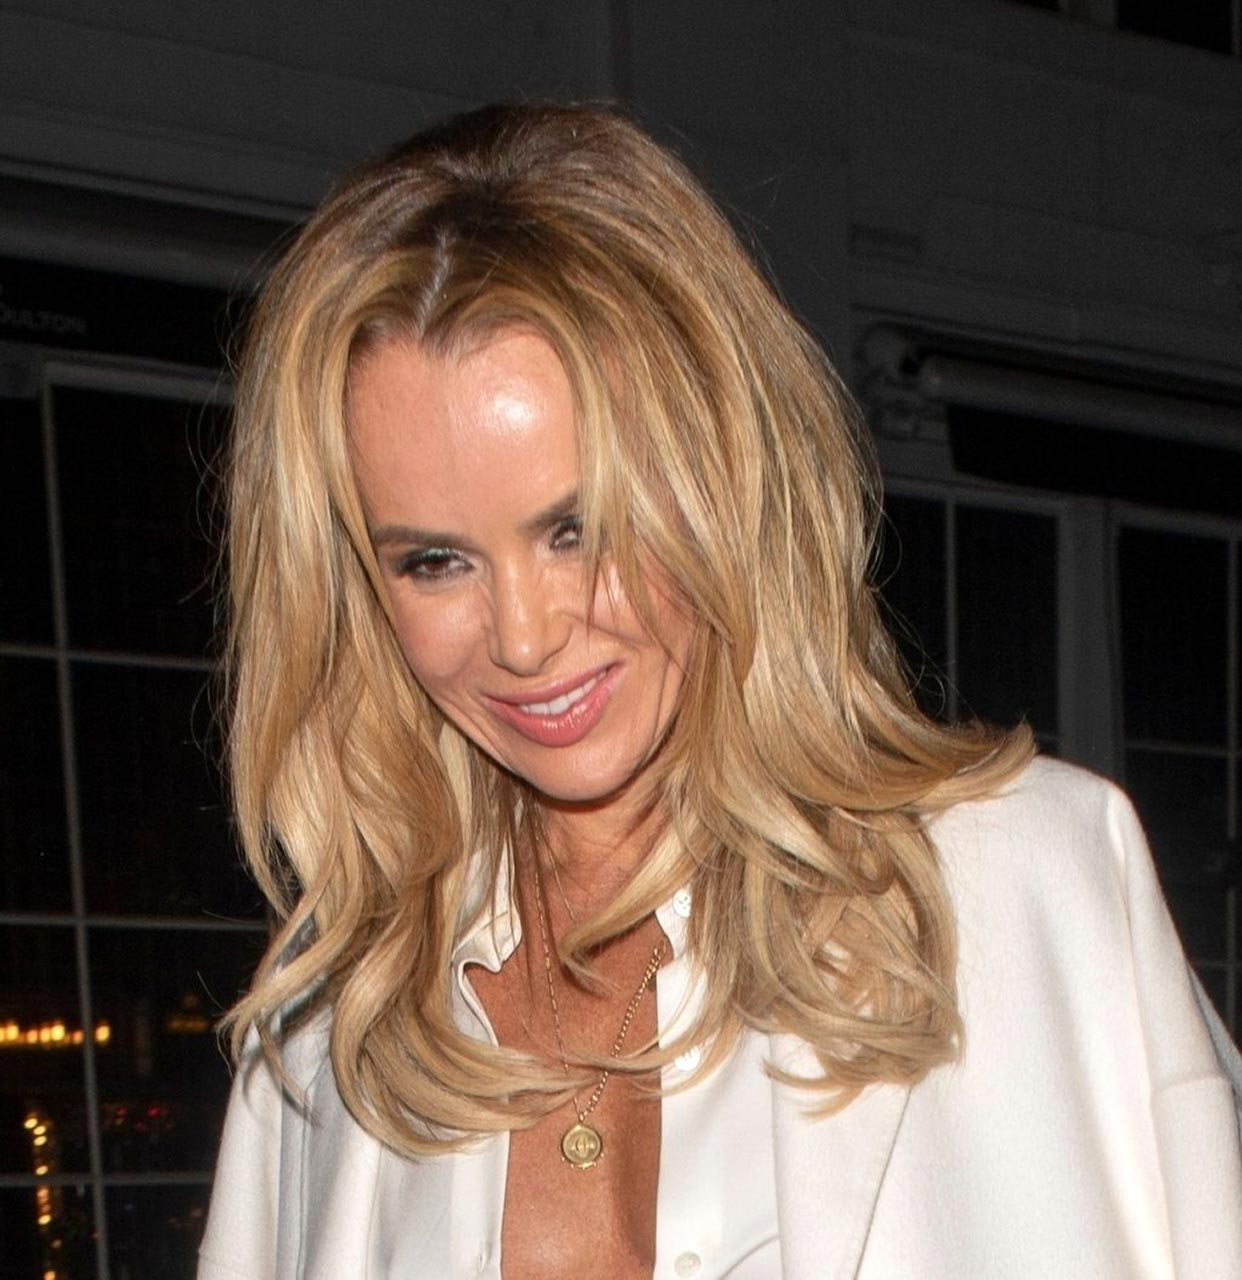 Watch Amanda holden naked video